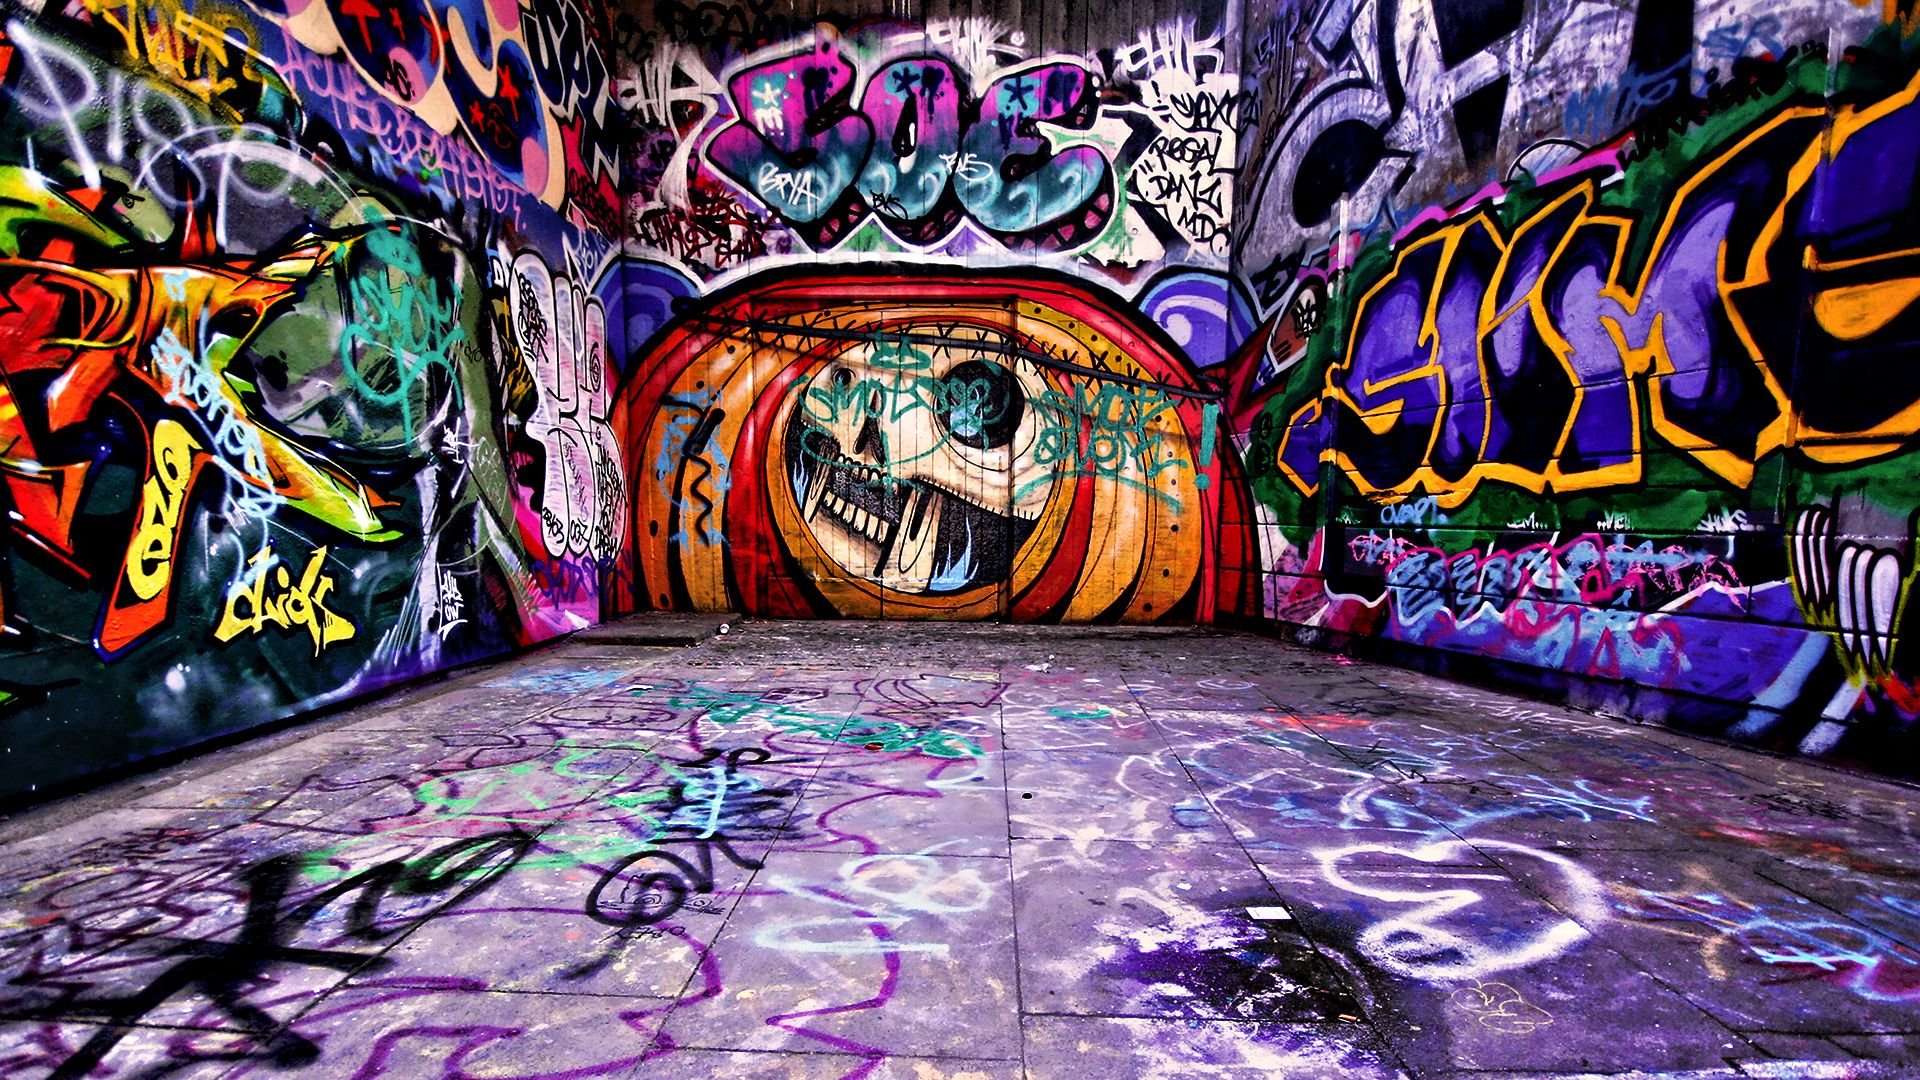 Graffiti Wallpaper 1920X1080 Graffiti Px 15517 Free Download Hd Wallpaper